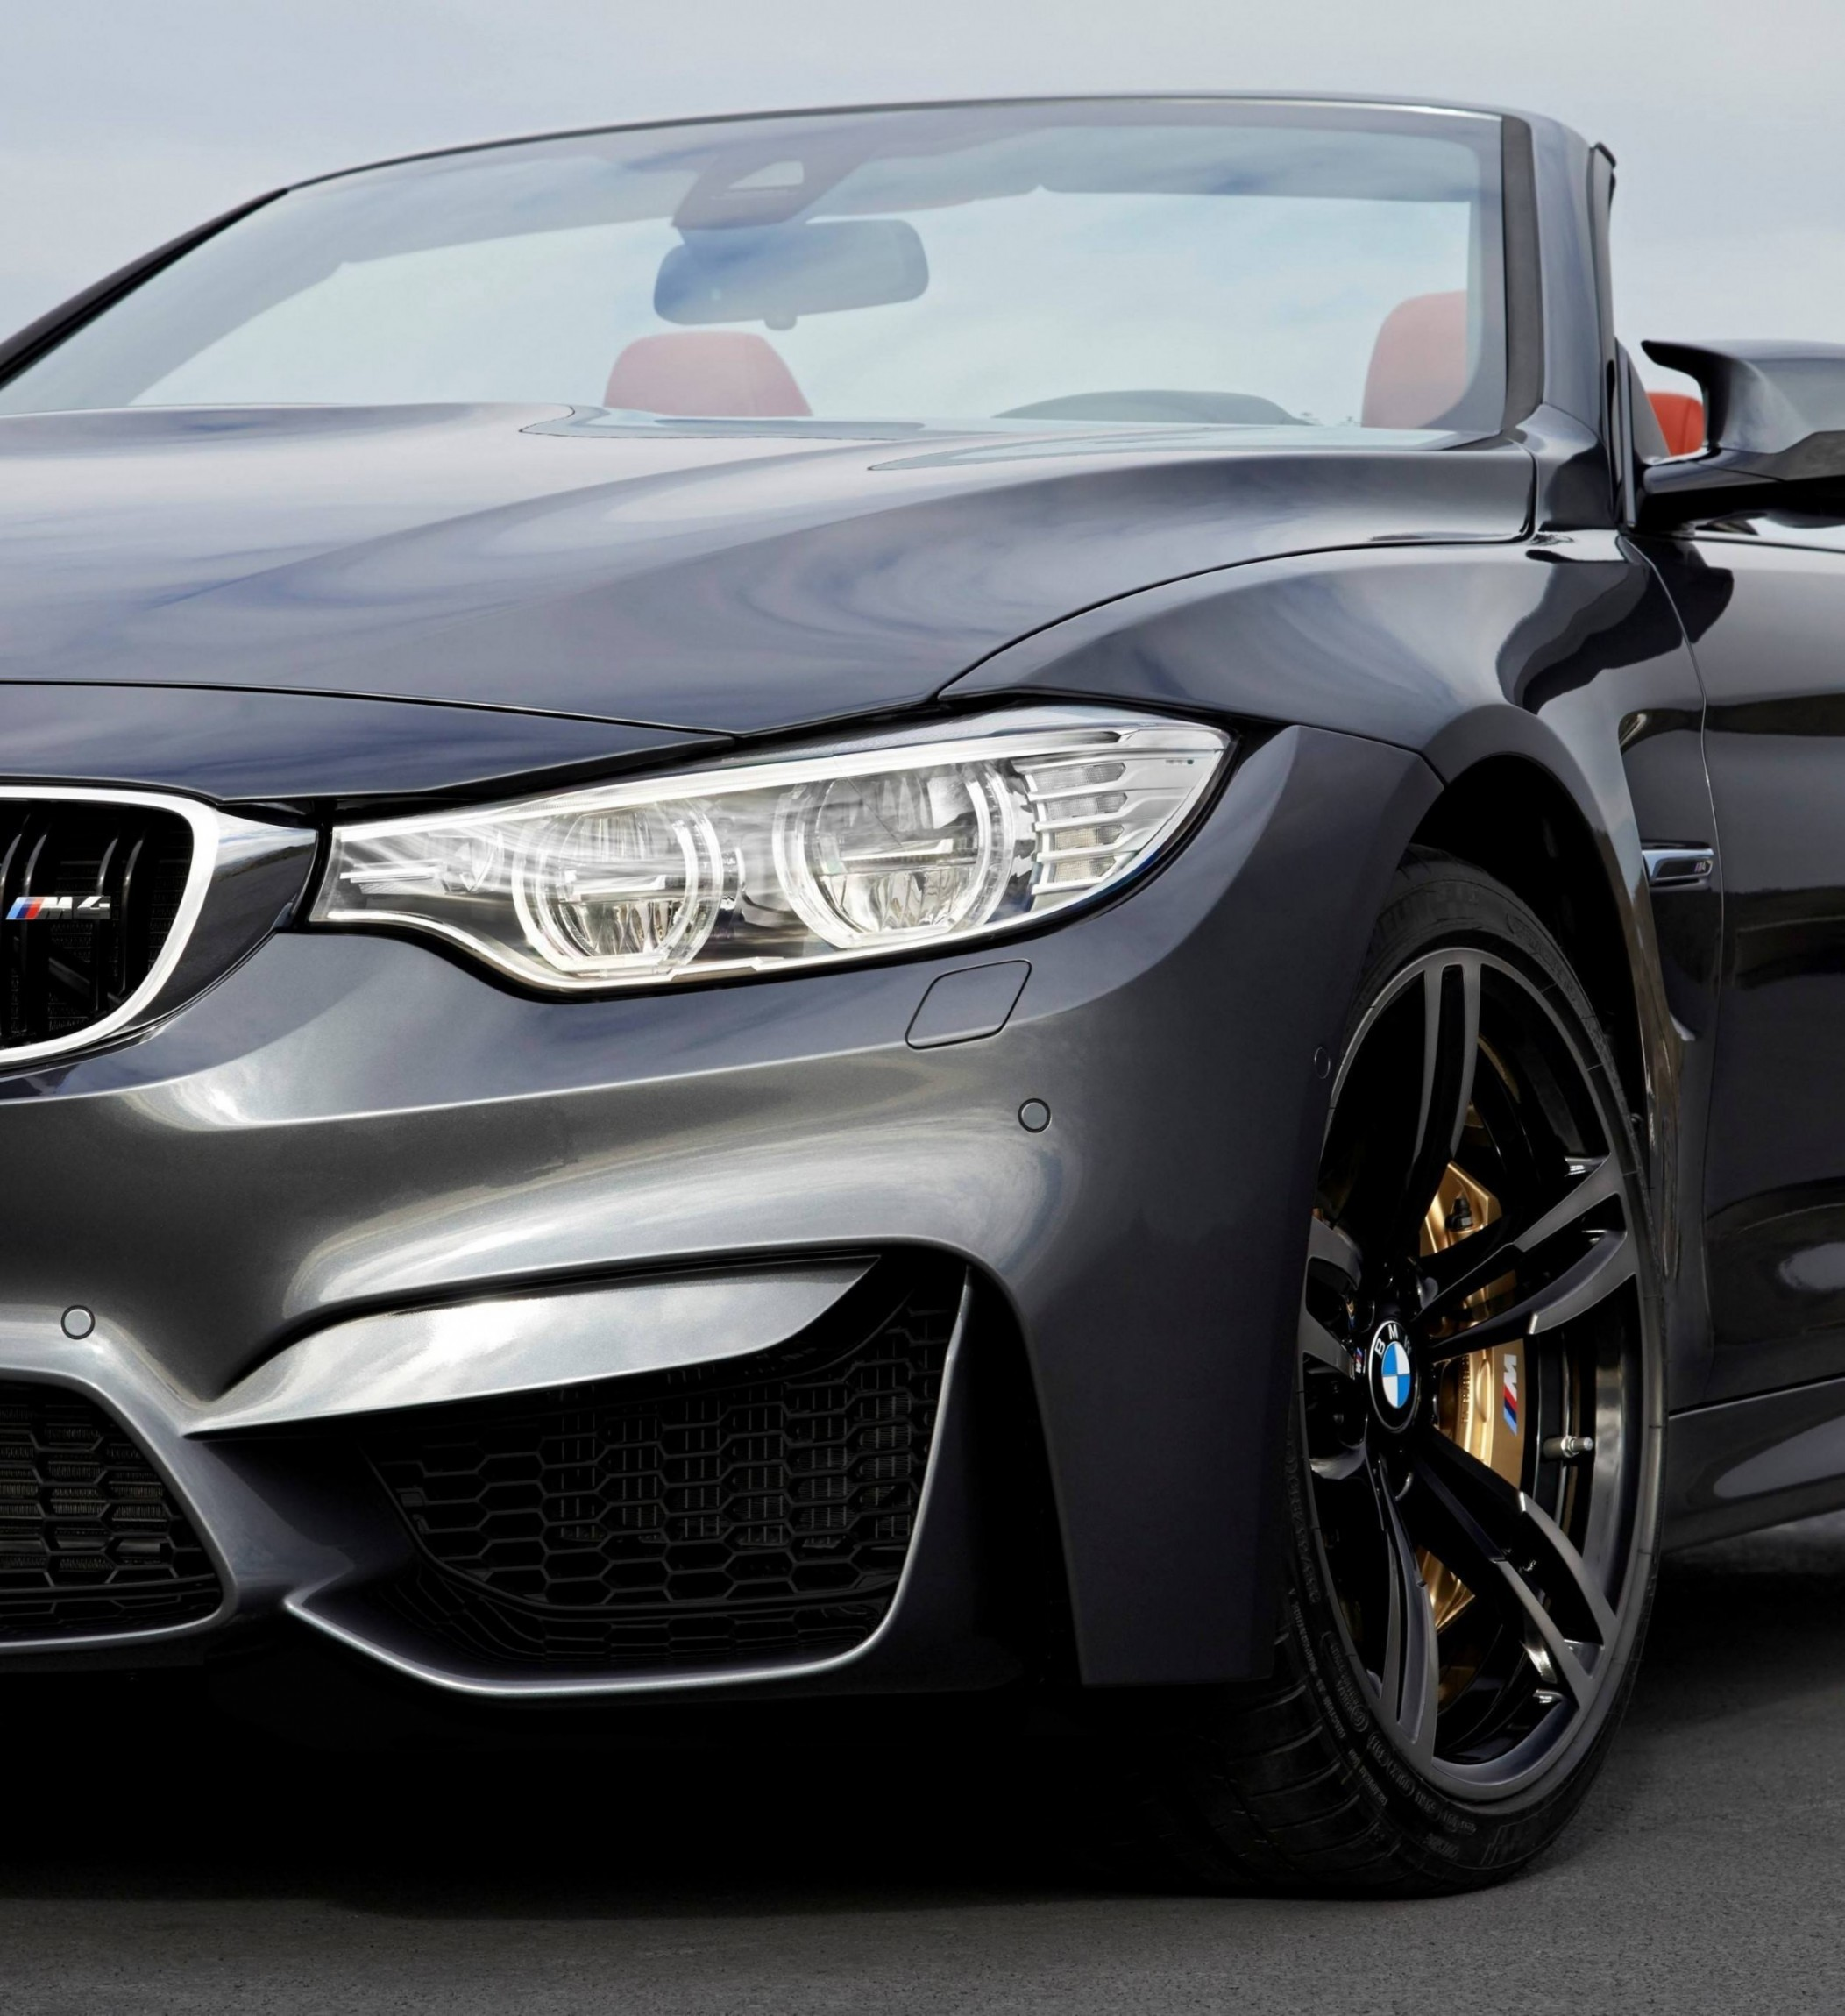 Bmw M4: 4.2s, 425HP 2015 BMW M4 Convertible! Full Details + 39